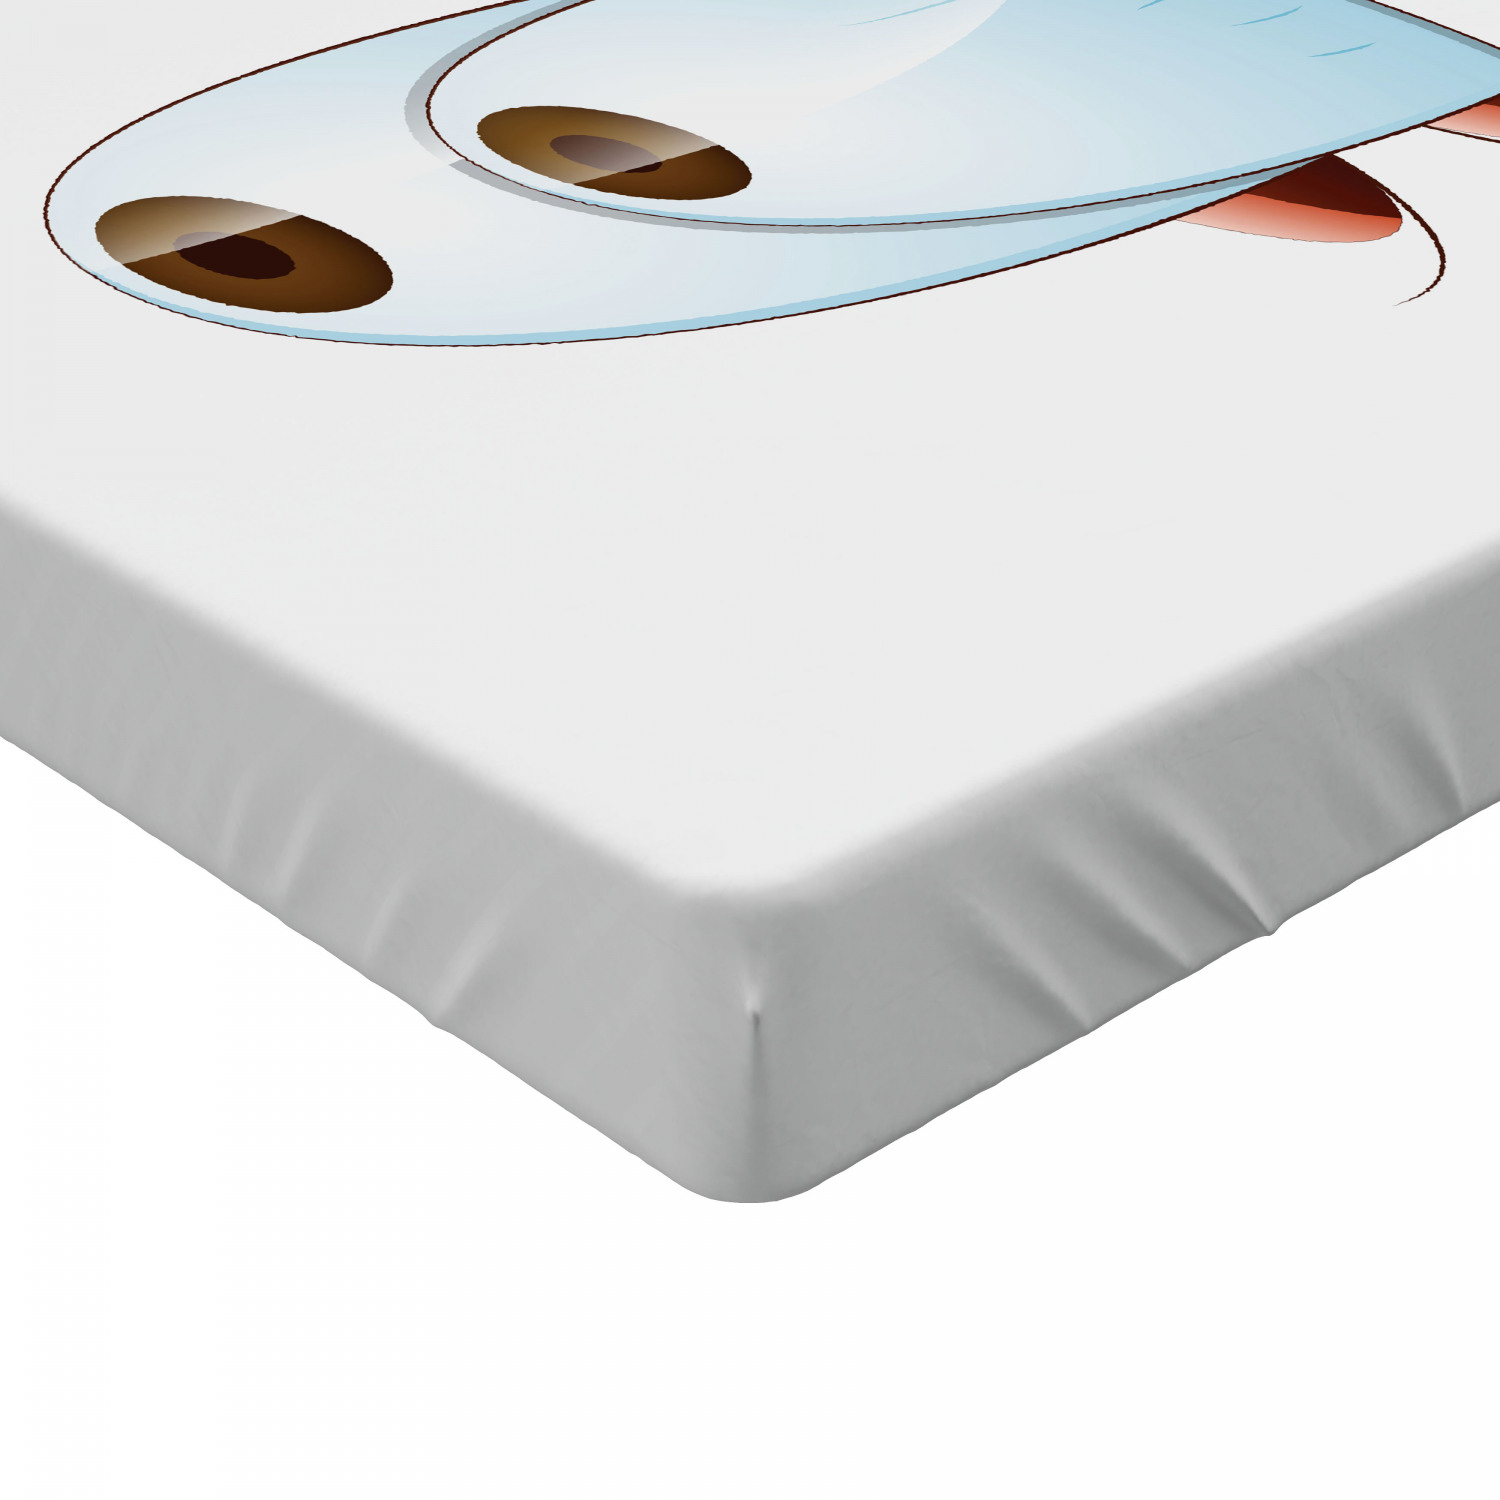 Eye Fitted Sheet Cover with All-Round Elastic Pocket in 4 Sizes